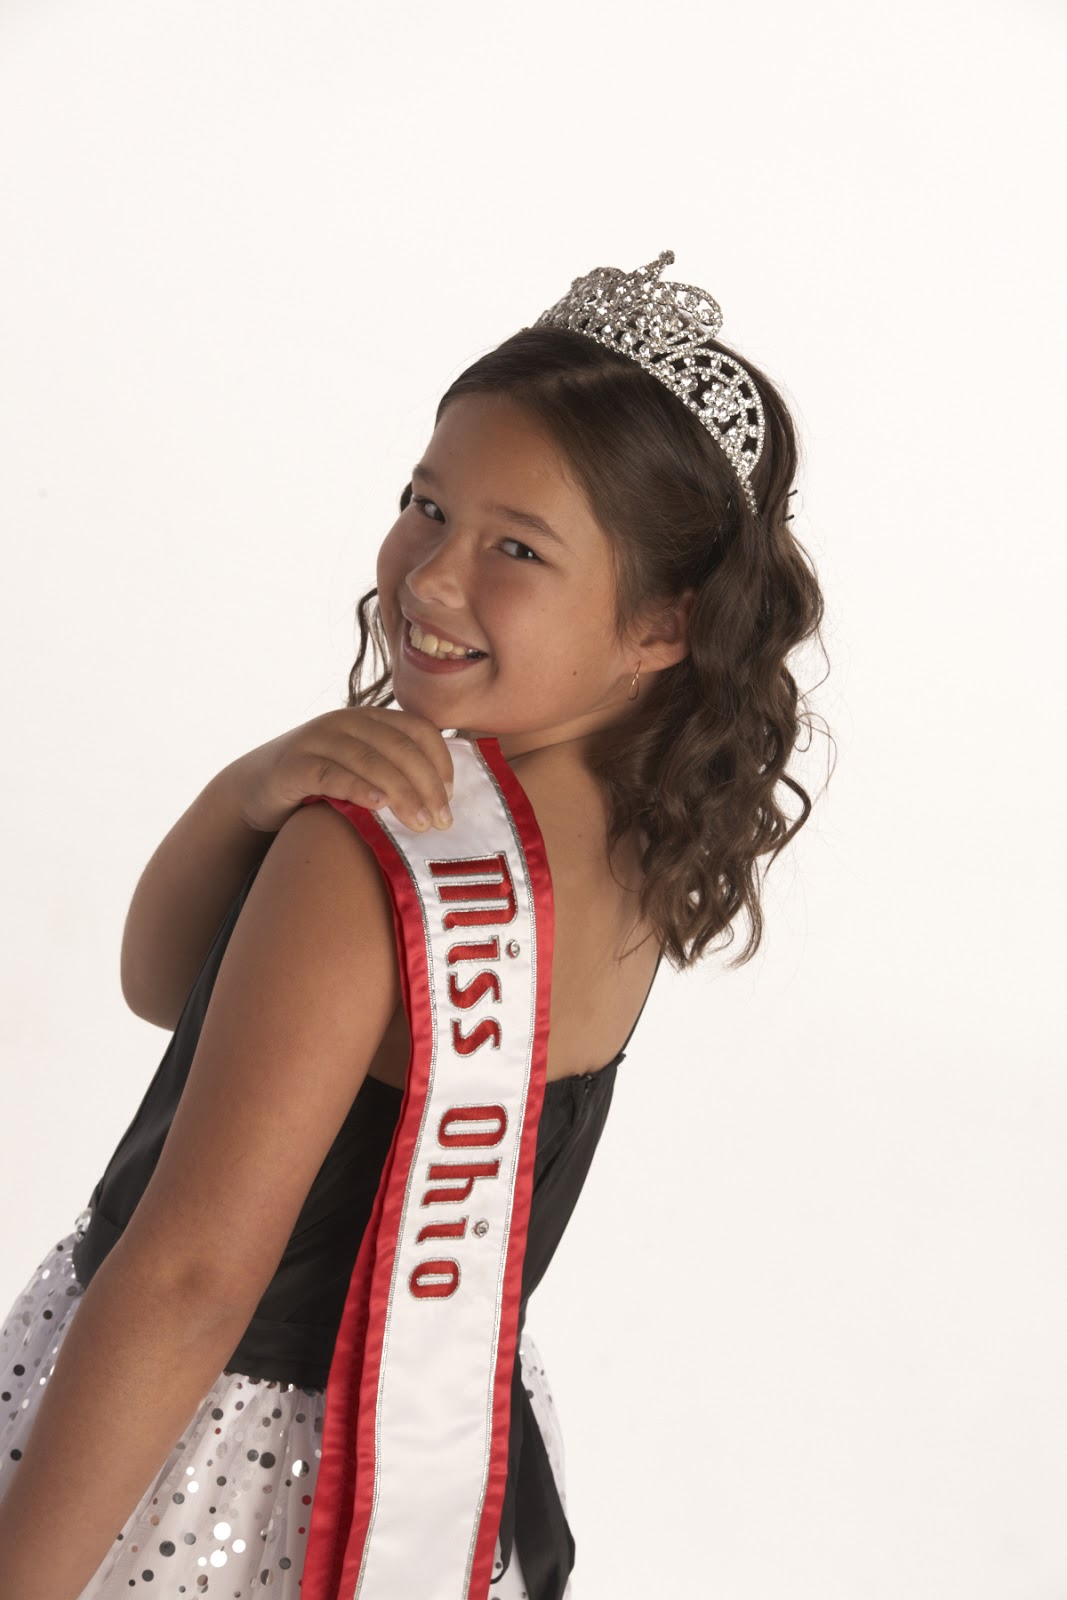 NATIONAL AMERICAN MISS...365 !!!: 6/23/13 - 6/